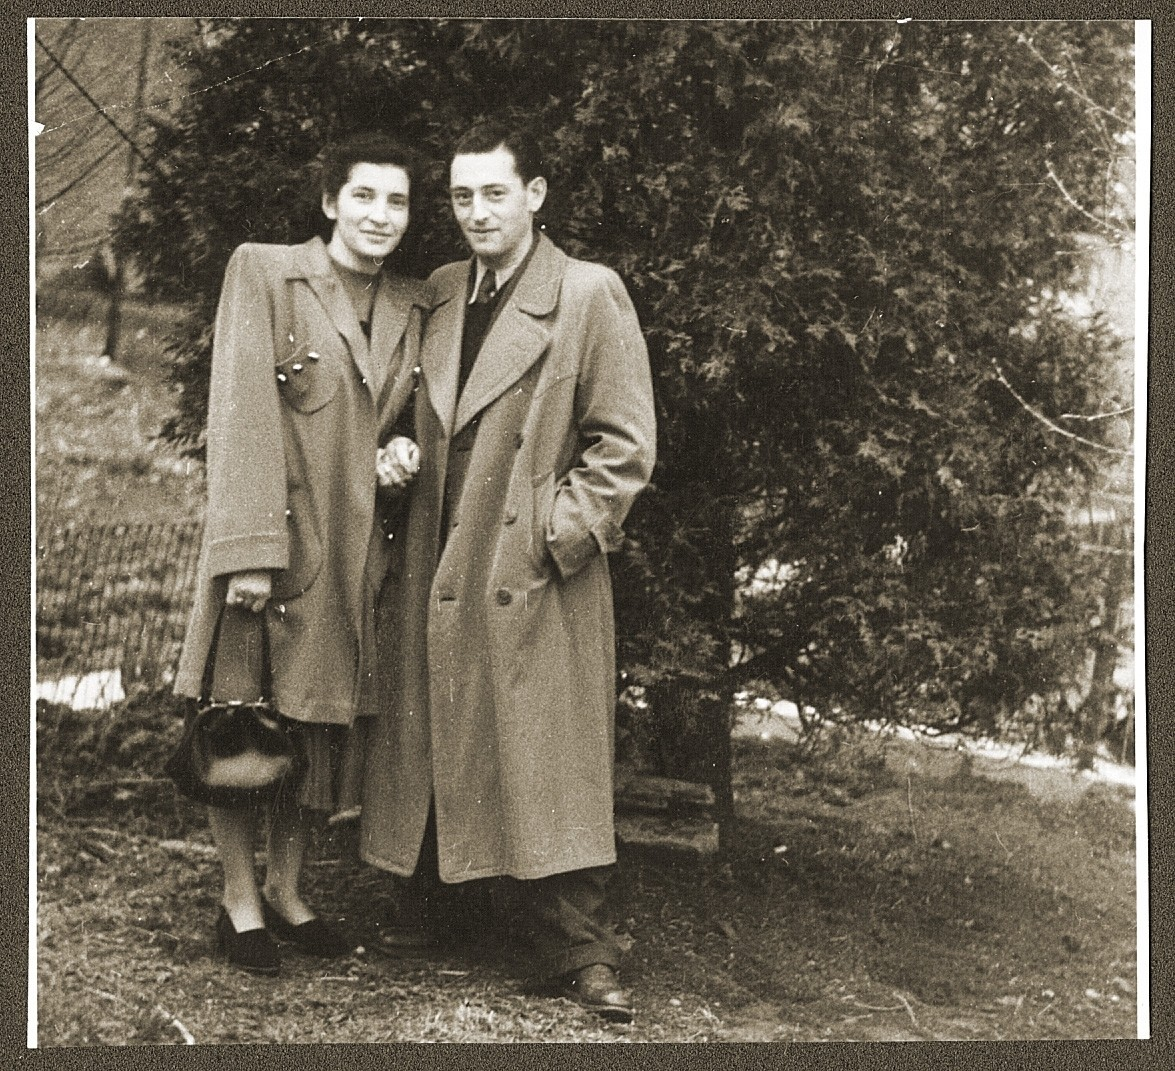 A Jewish DP couple from Poland poses outside in Lancaster, PA, soon after their immigration to the U.S.  Pictured are Fela and Natan Gipsman.